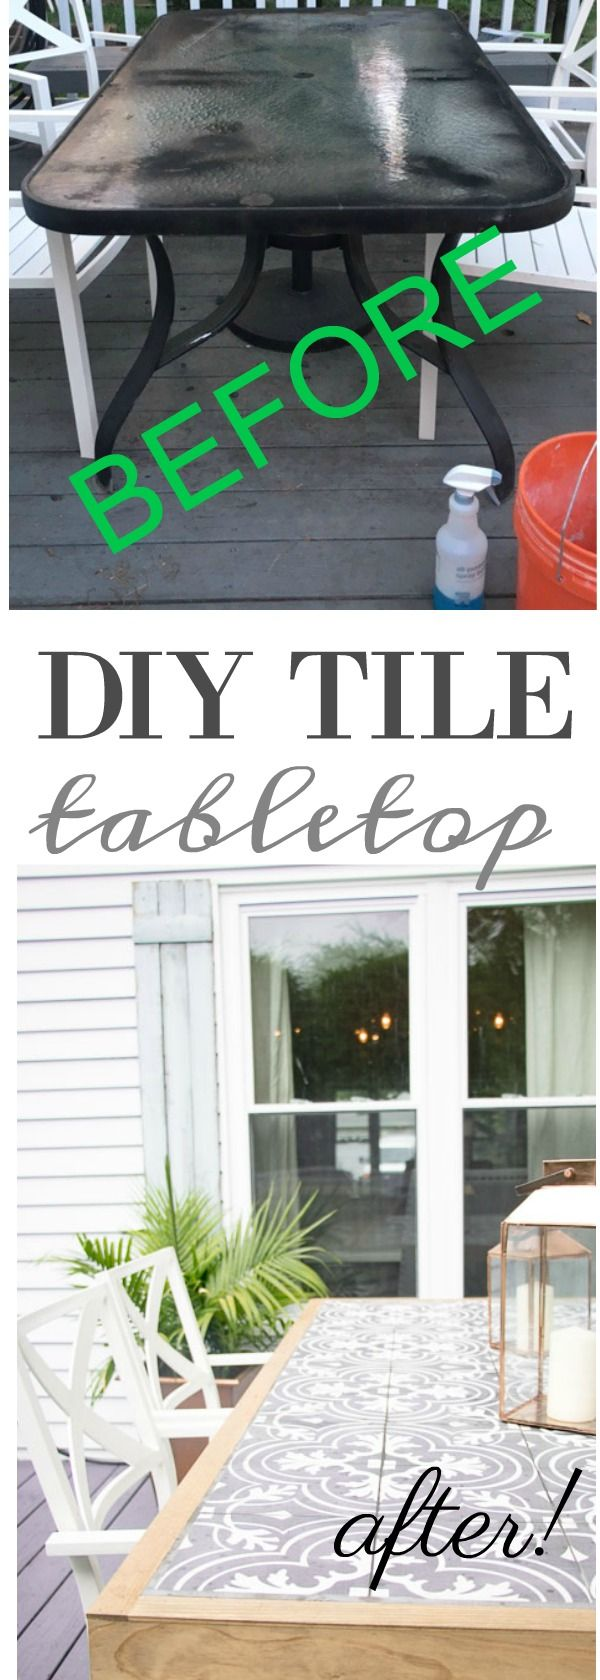 DIY Tile Tabletop: Using Merola Tiles Let's first talk about the dreamy black and white (link to tile here) Merola tiles. Who else has been oohing-ahhing at these for the last year or so? This post contains affiliate links that I make a small commission from, with no added cost to your purchase.  They are such... Read more